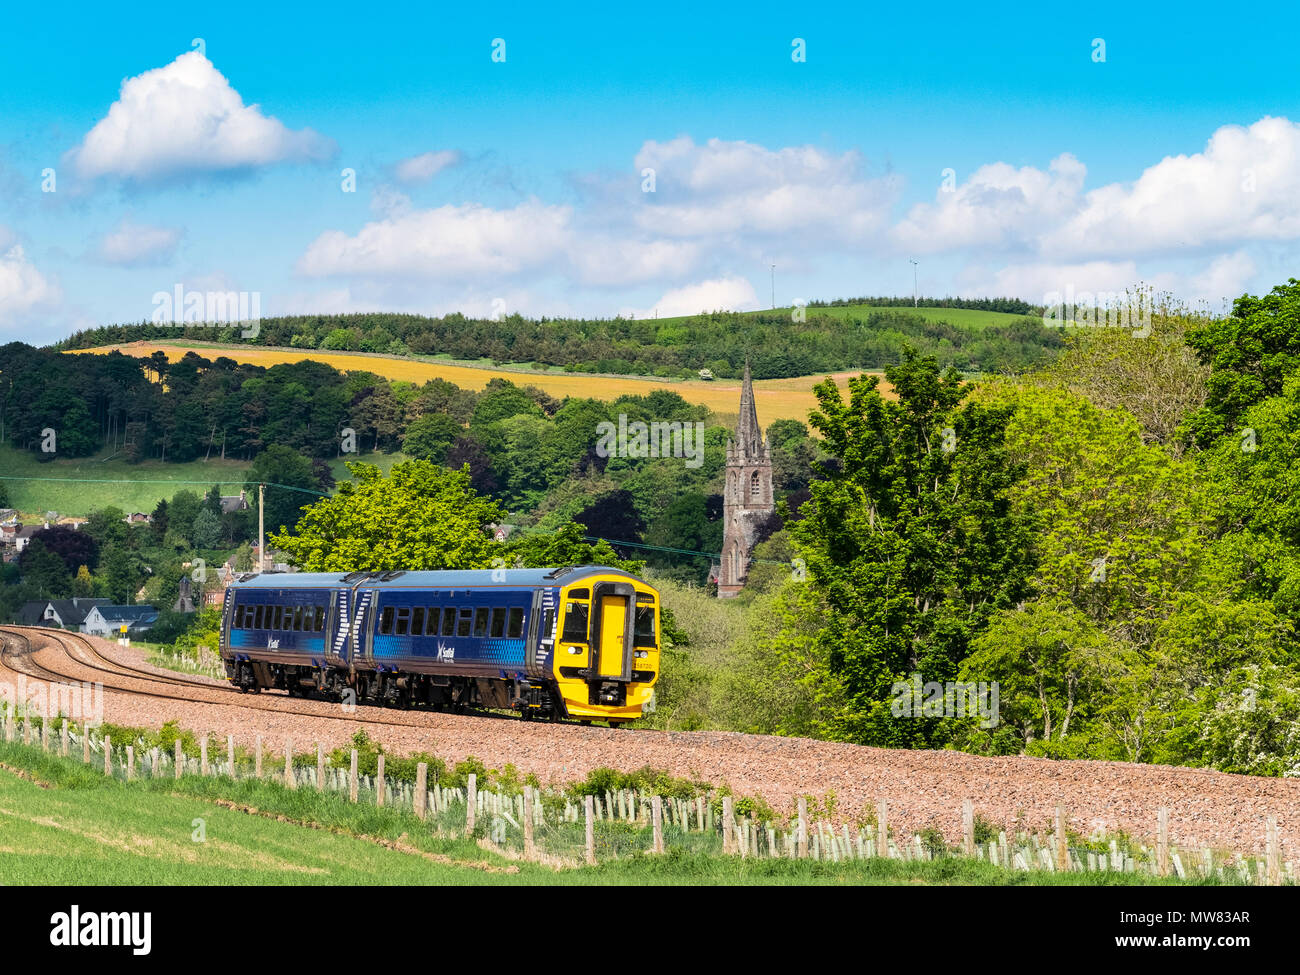 View of passenger train on Borders railway at Stow, Scottish Borders , Scotland, UK - Stock Image